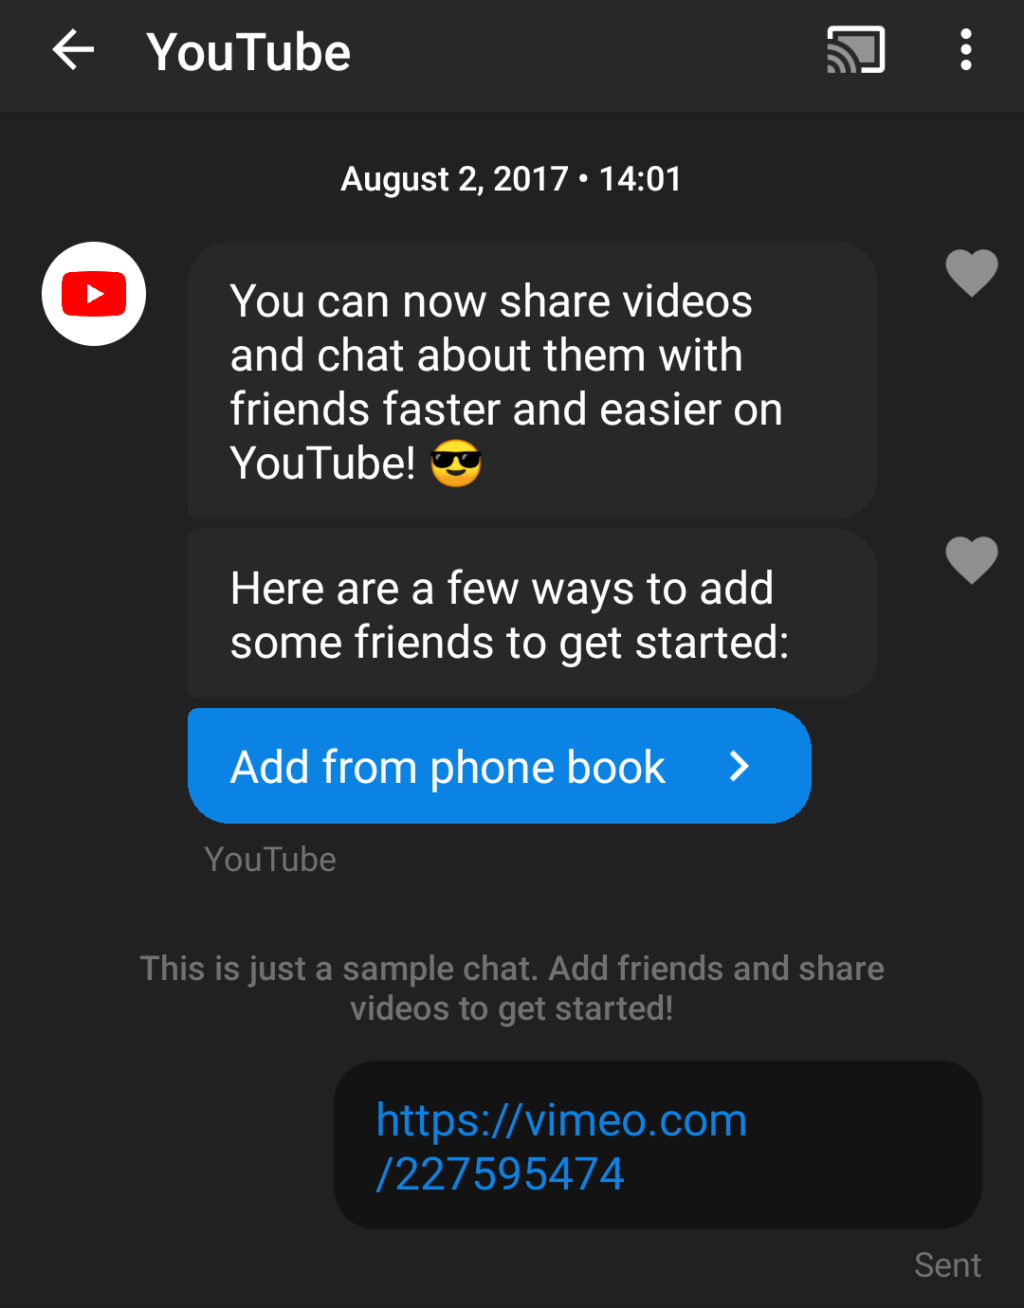 Testing YouTube chat in 2017